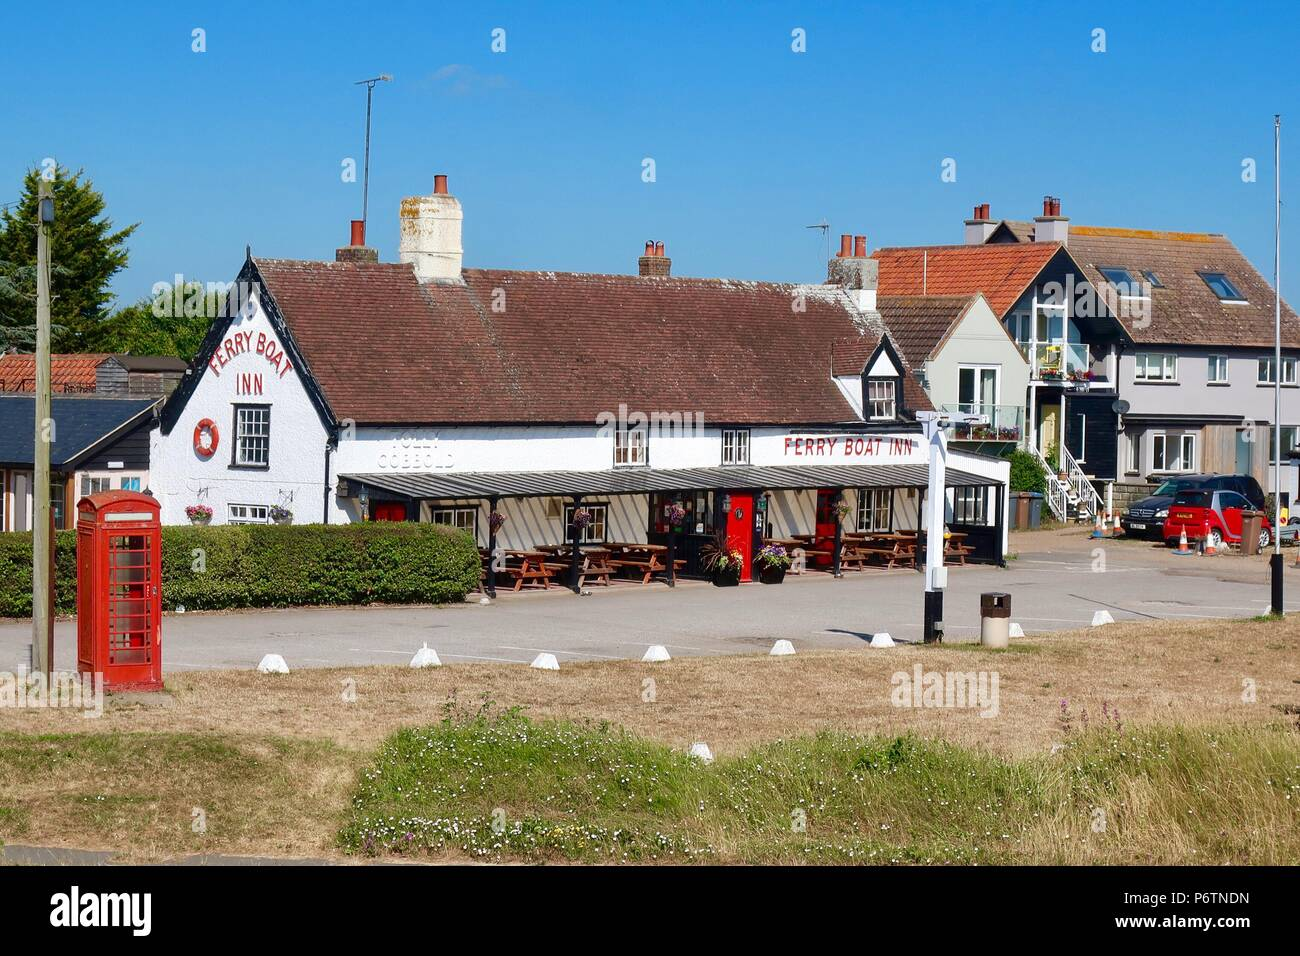 The Ferry Boat Inn at Felixstowe Ferry, Suffolk, UK. June 2018. - Stock Image